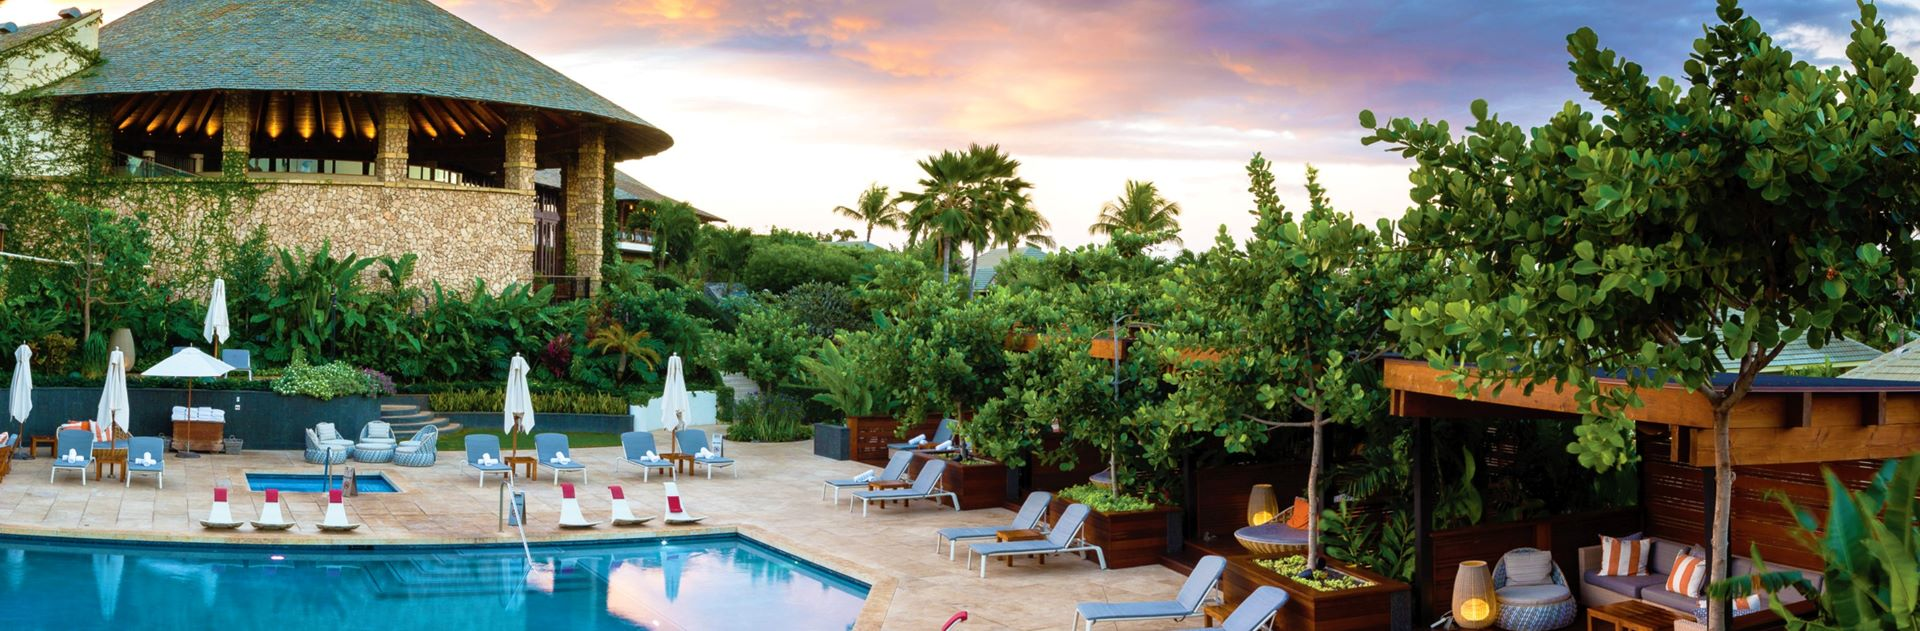 Maui's Magical Hideaway Creating Romantic Serene Escapes For Lovers